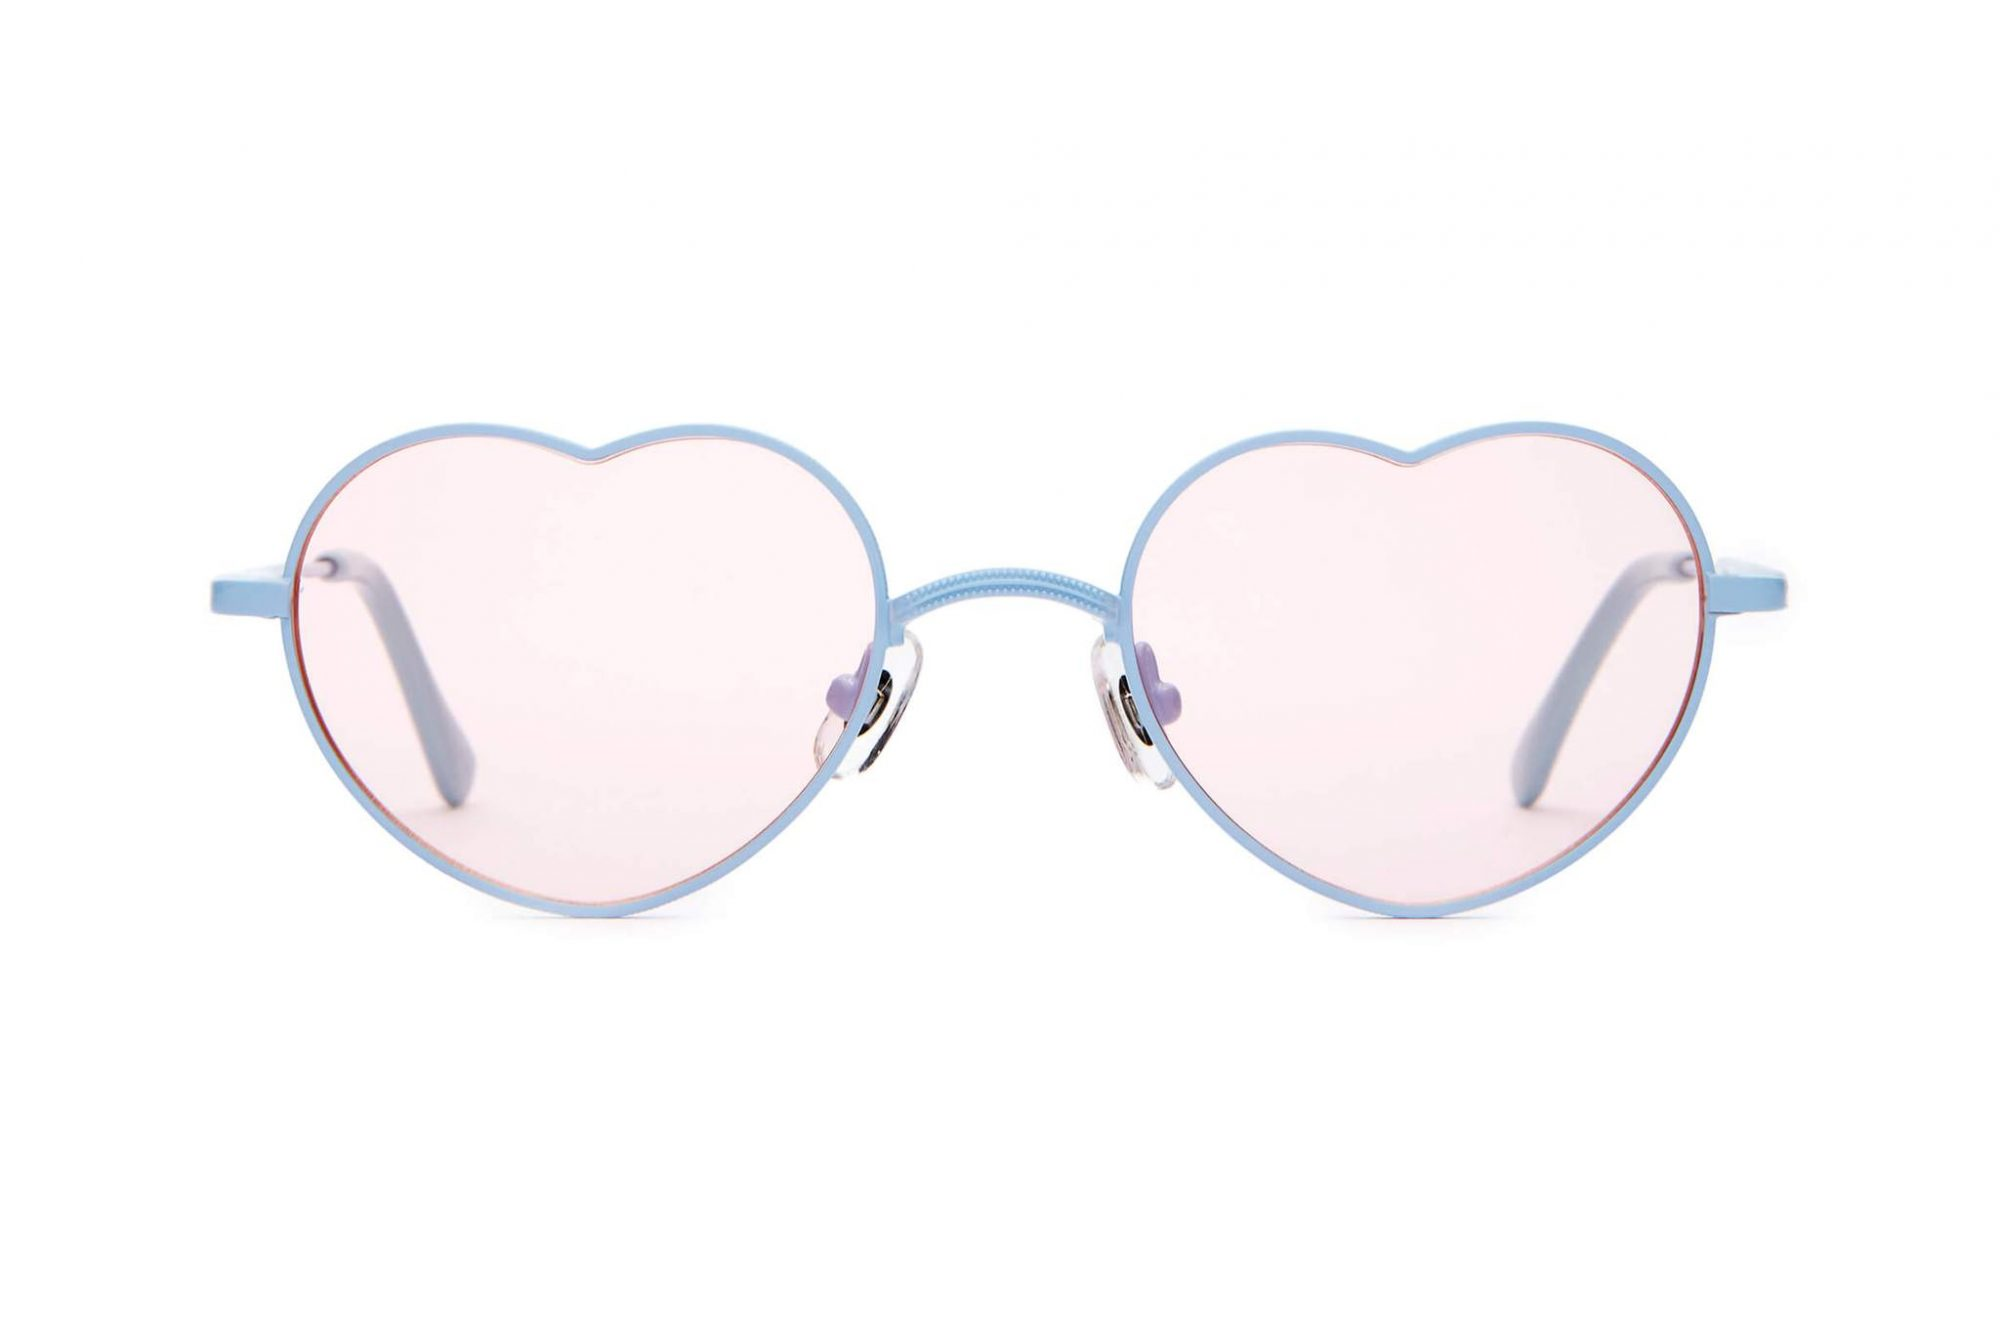 Crap_Eyewear-The_Doctor_Love-Powder_Light_Blue_Stainless_Steel_Light_Blue_Acetate_Small_Heart_Shape_Wire_Metal_Sunglasses-Pink_Tint_Lens